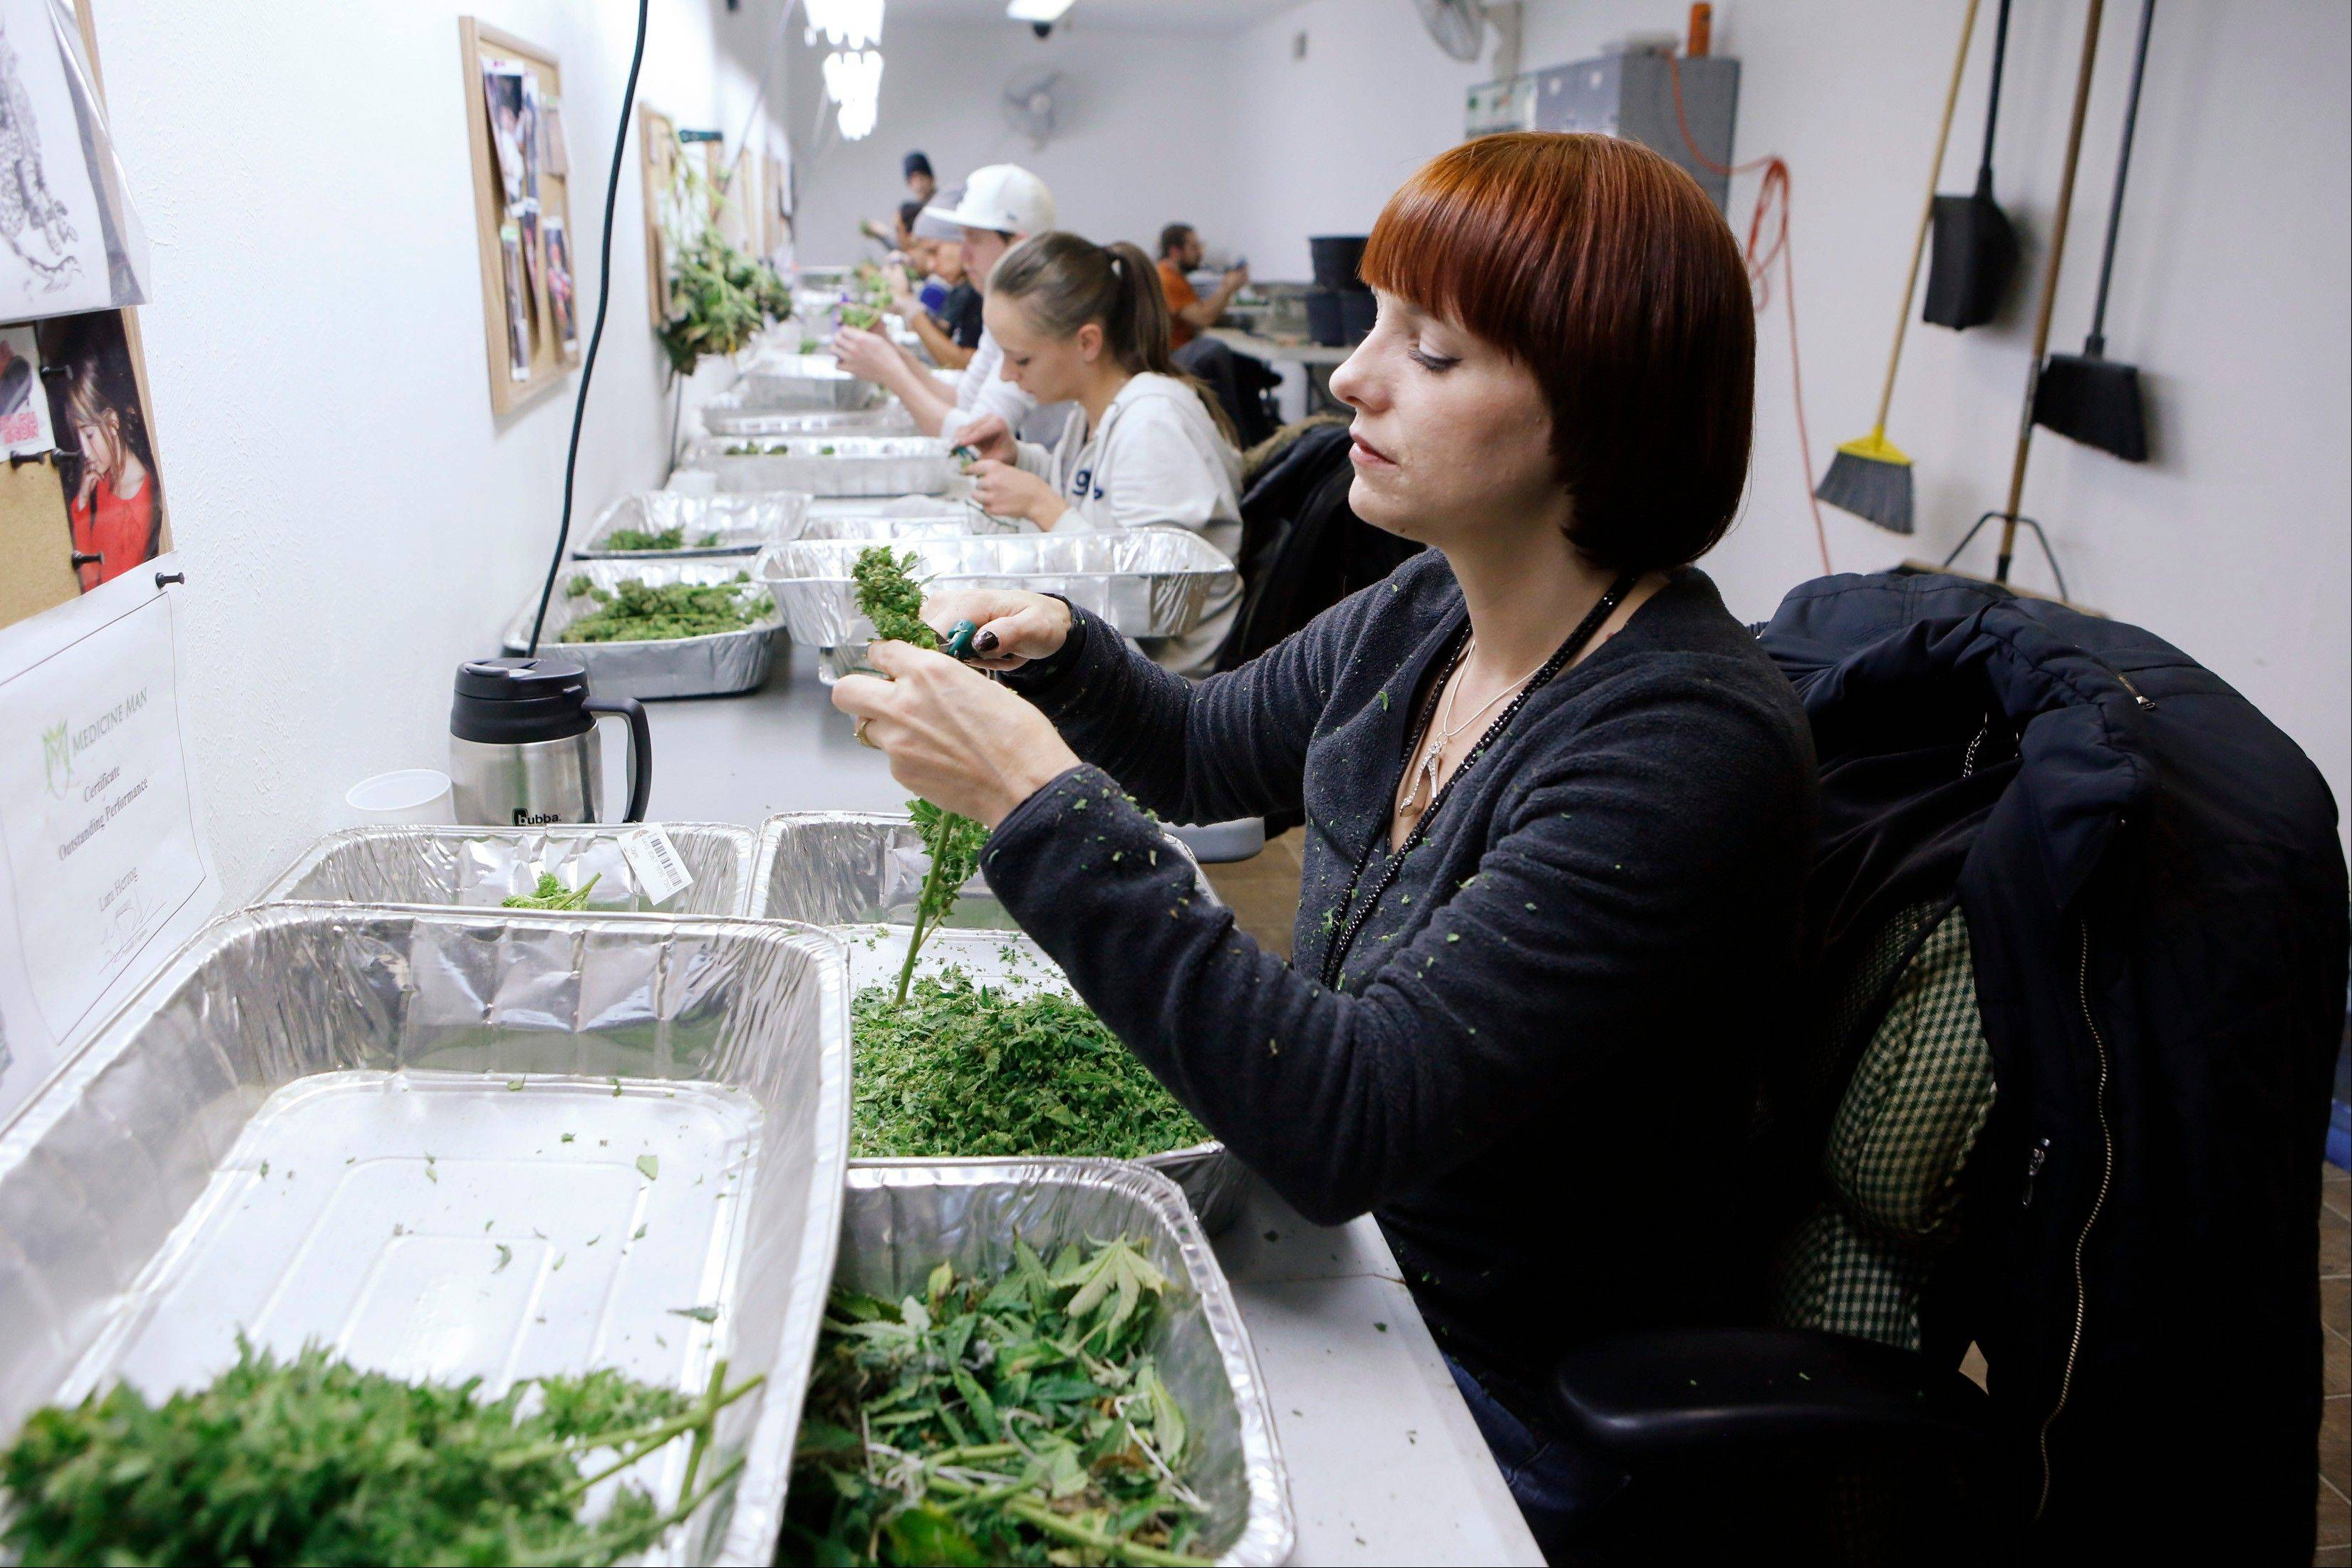 Workers process marijuana in the trimming room at the Medicine Man dispensary and grow operation in northeast Denver. Colorado will be the first state to allow recreational pot sales, beginning Wednesday.